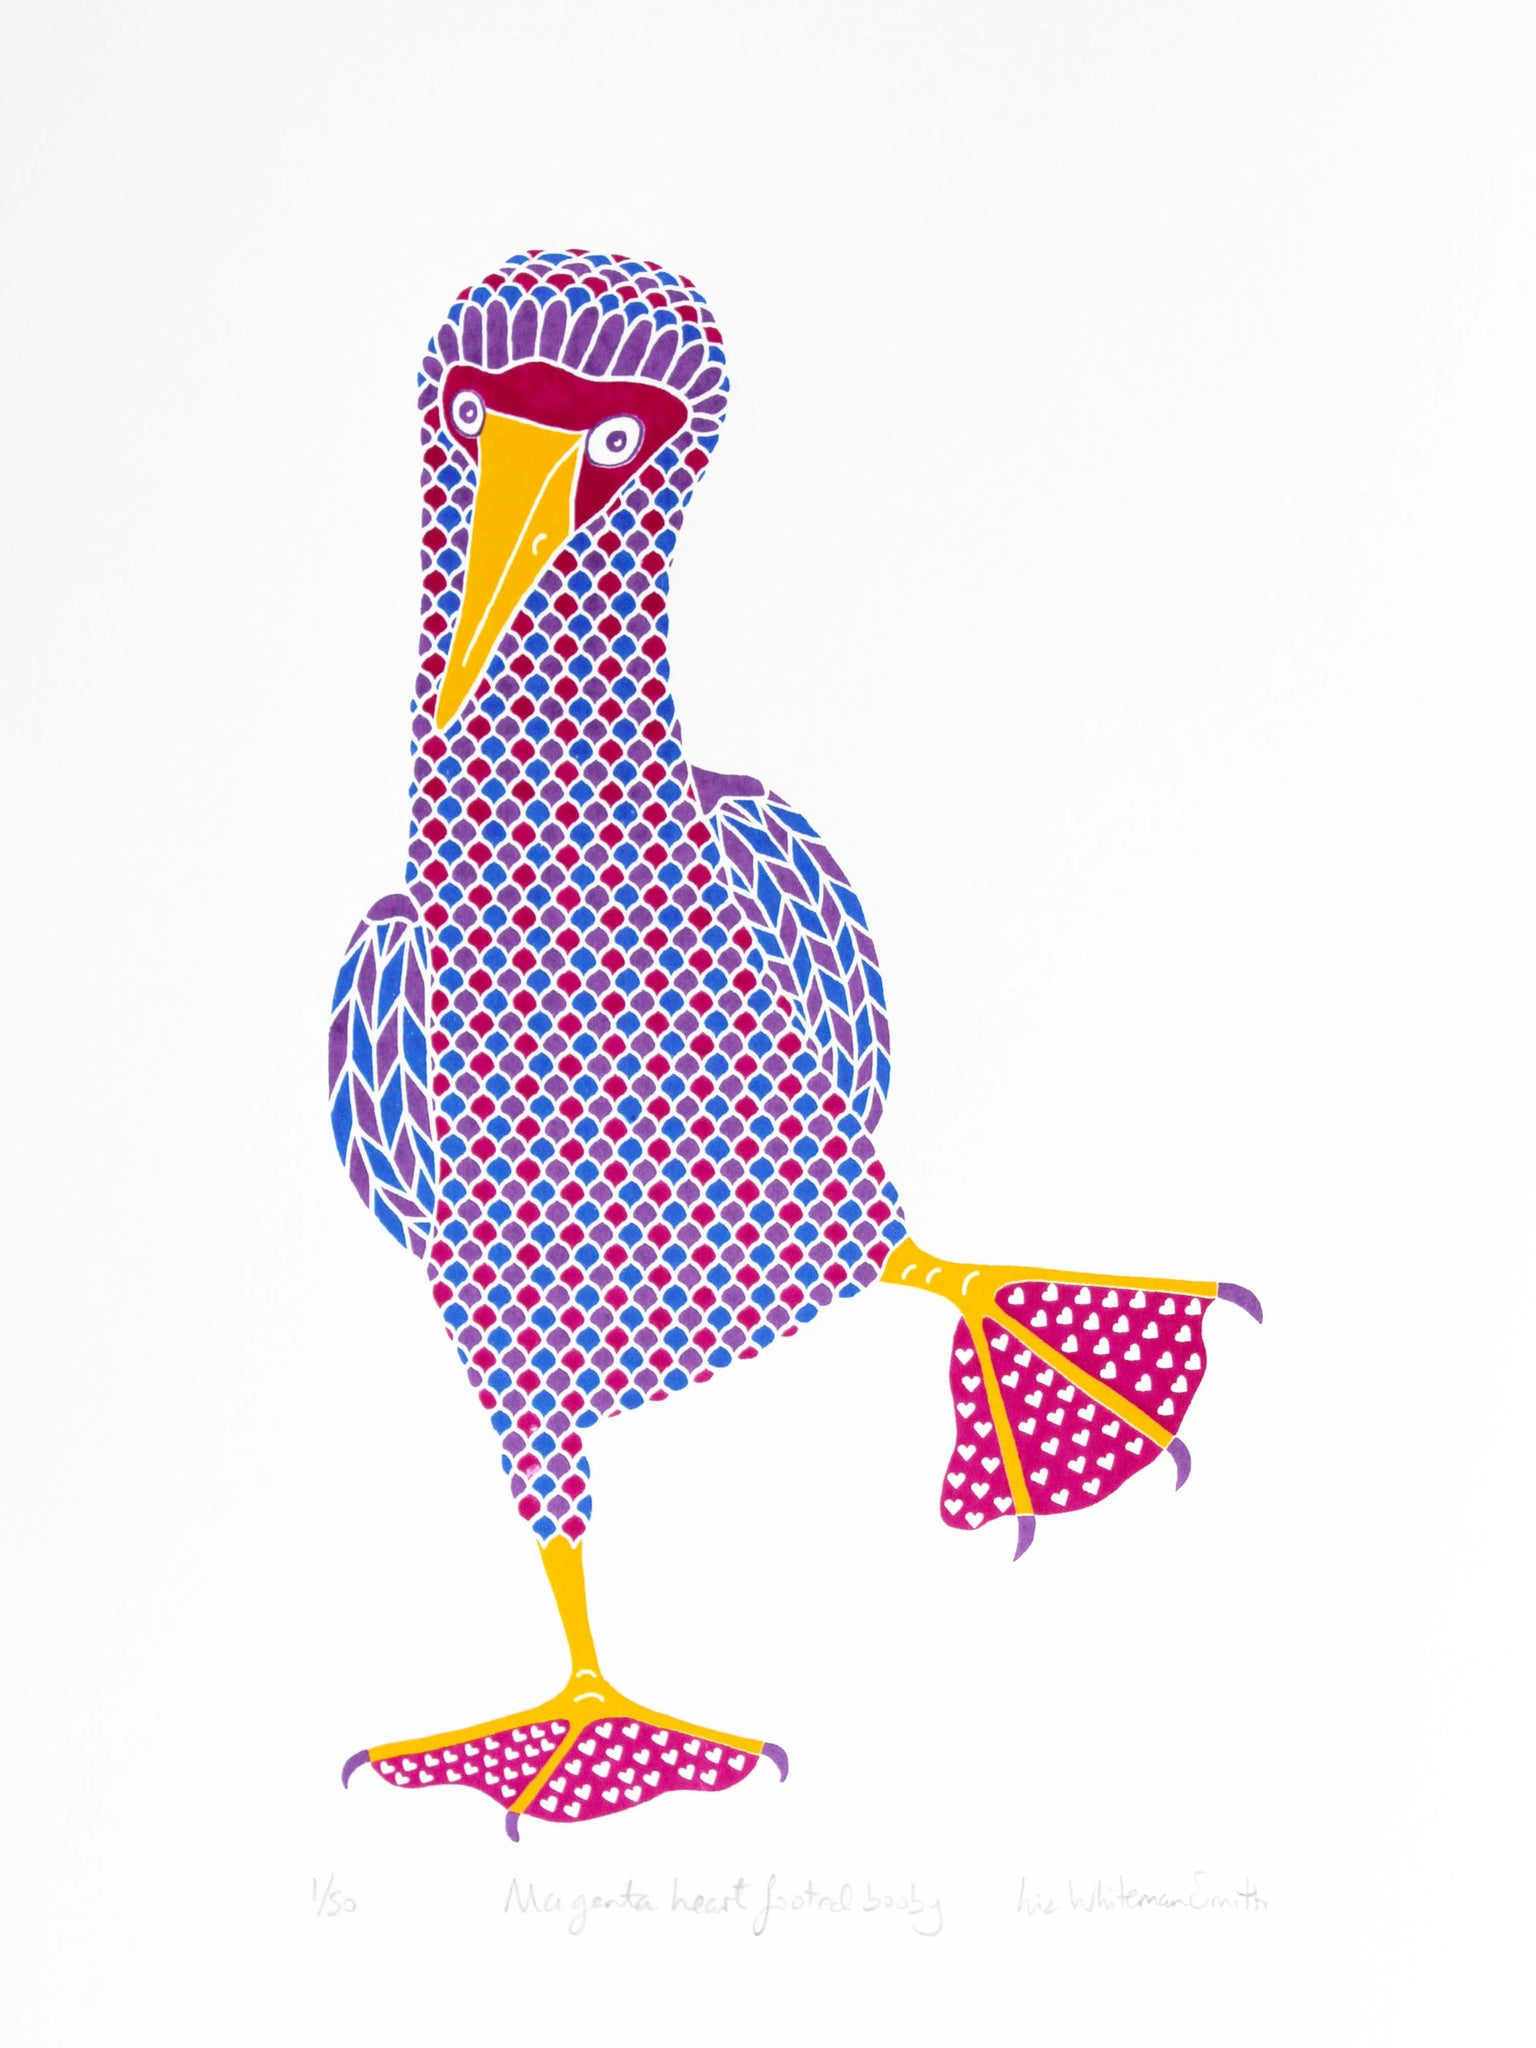 Pink booby with heart pattern on feet, blue footed booby bird, 4 colour original hand pulled limited edition screen print, 40 x 30 cm